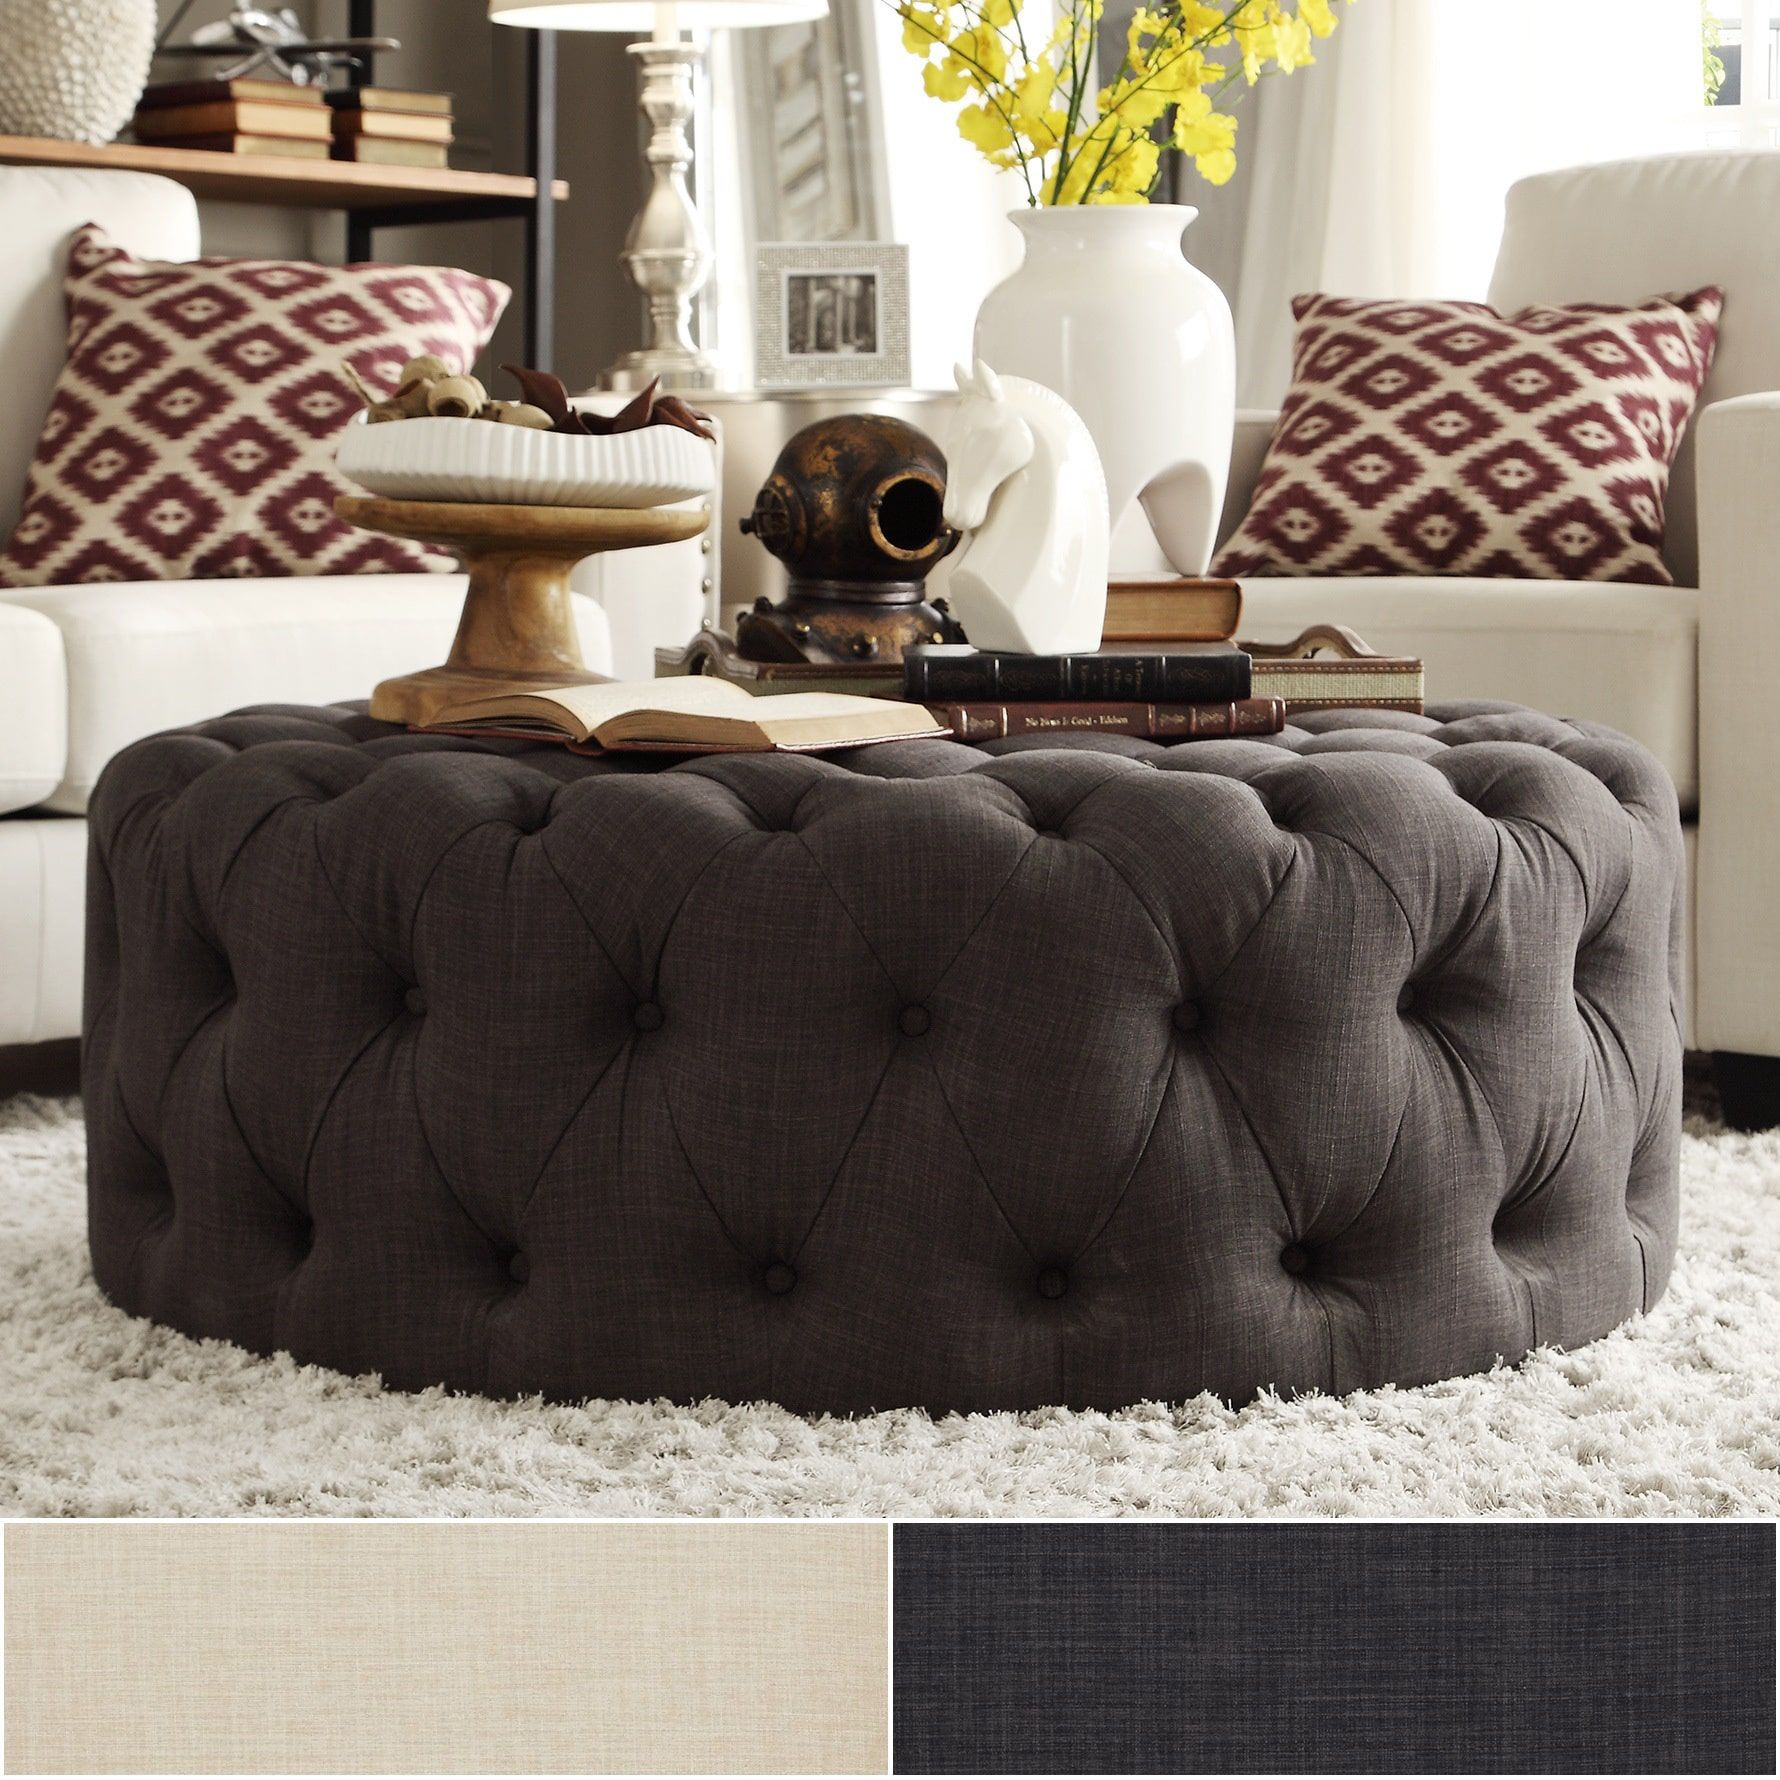 Knightsbridge Round Linen Tufted Cocktail Ottoman with Casters by iNSPIRE Q  Artisan by iNSPIRE Q